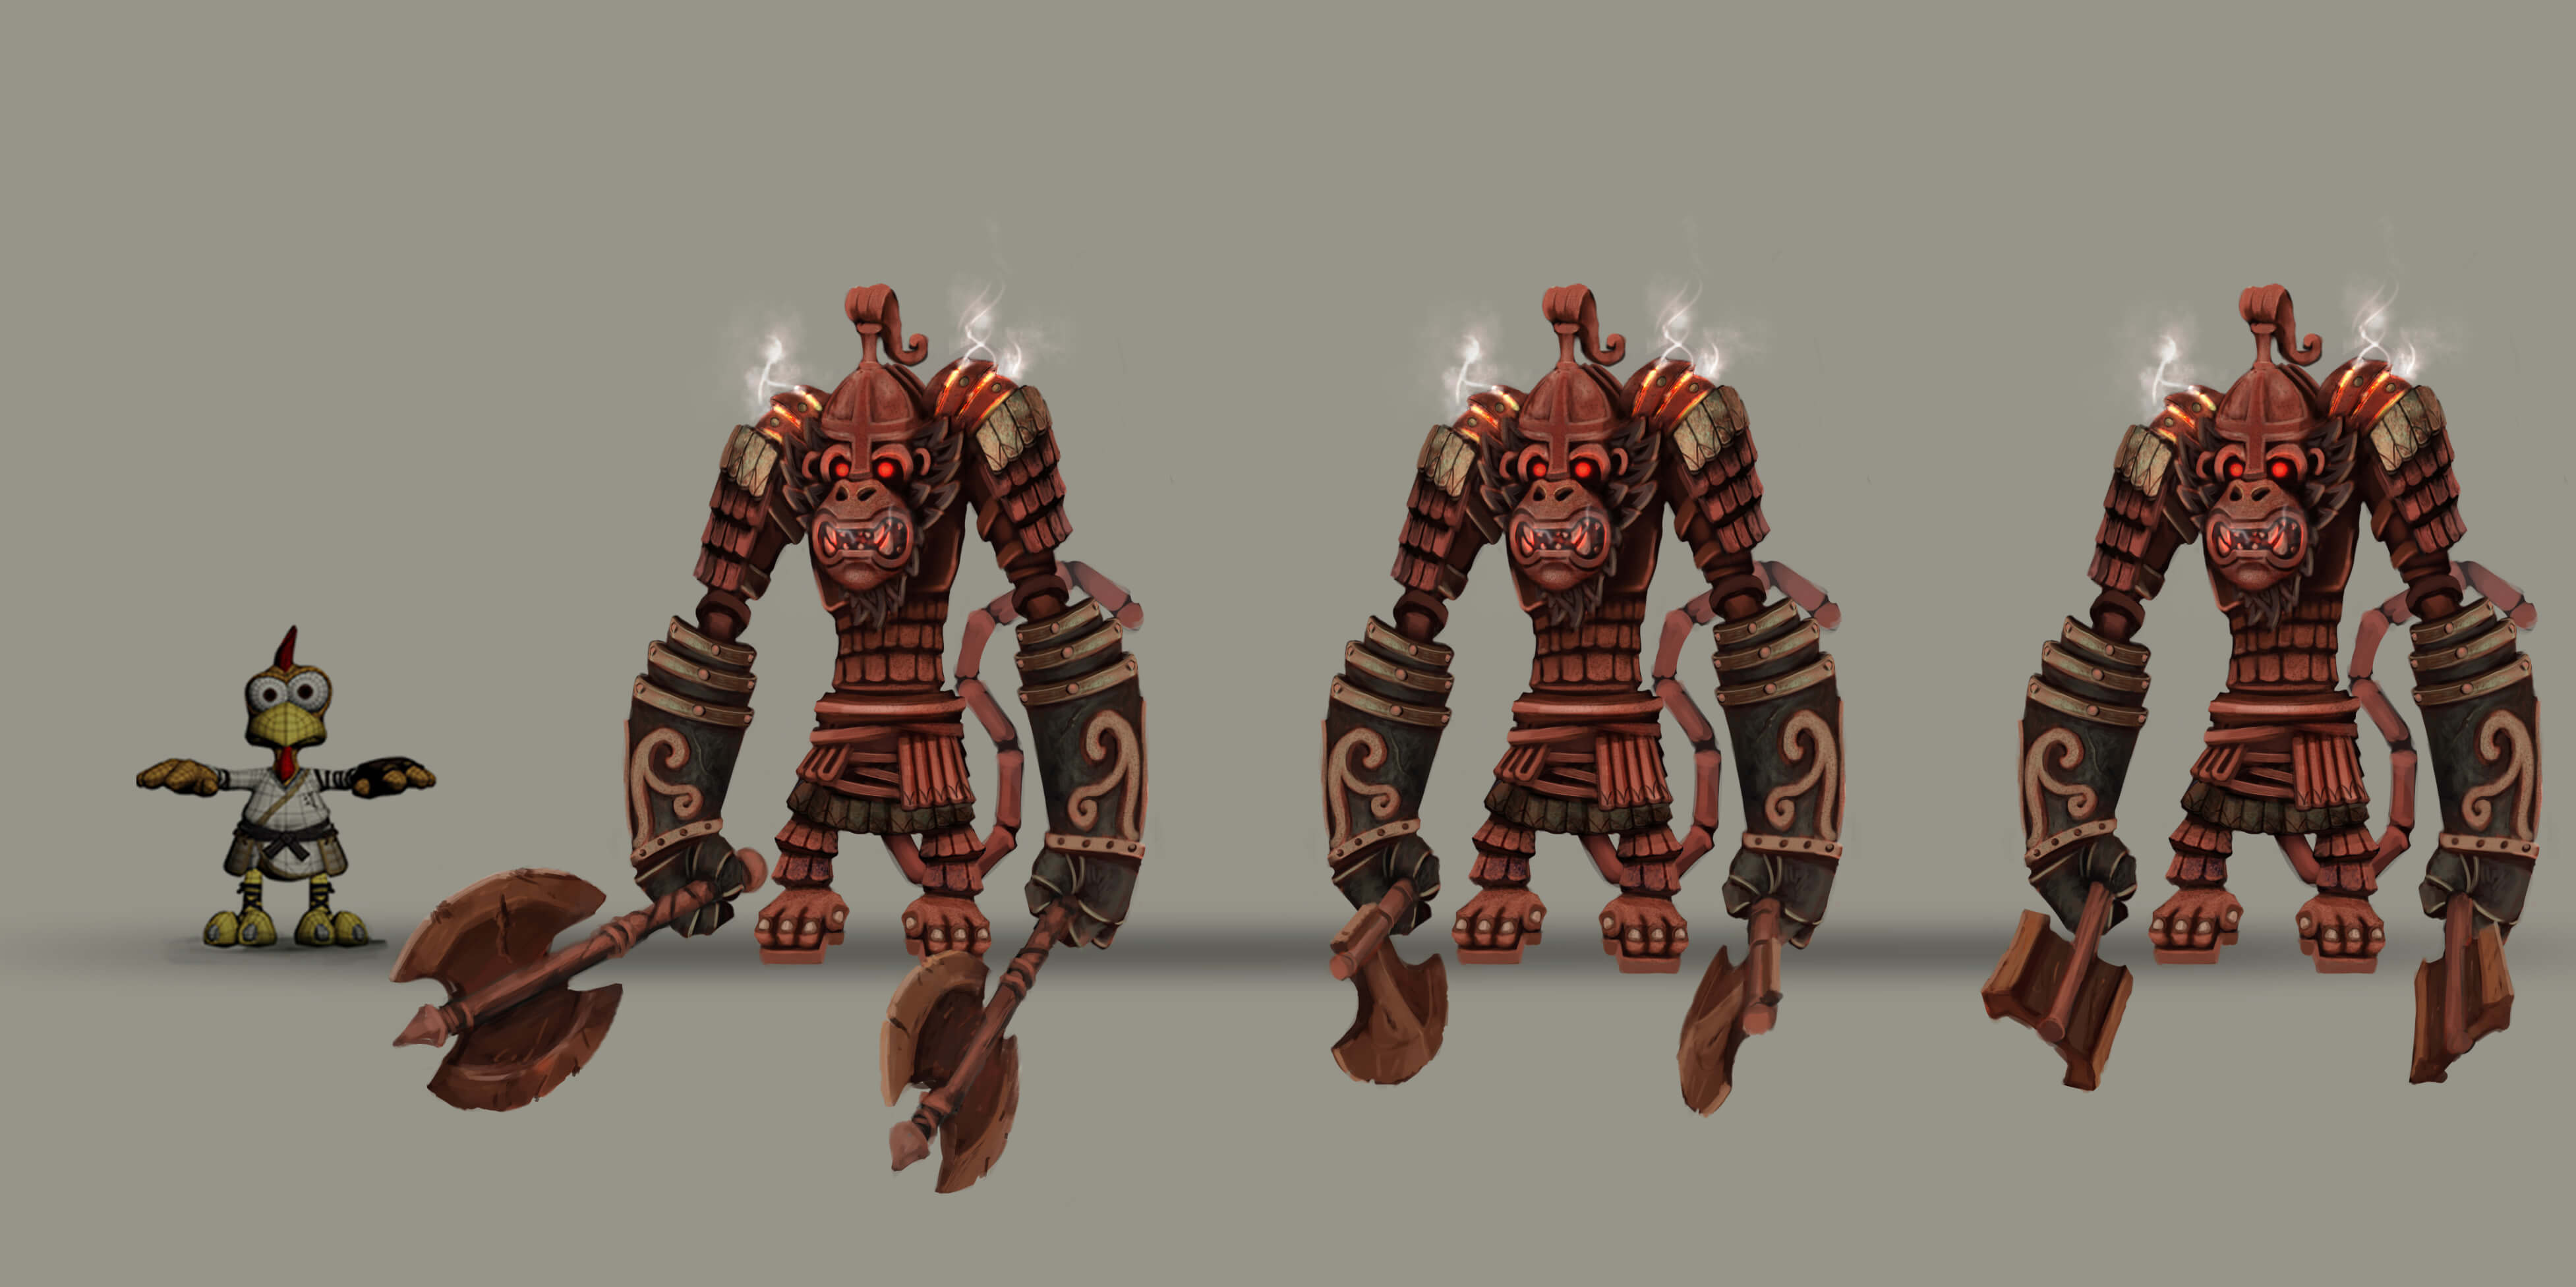 tiger-and-chicken-deck13-felix-haas-concept-artist-terracotta_warrior_004_weapons